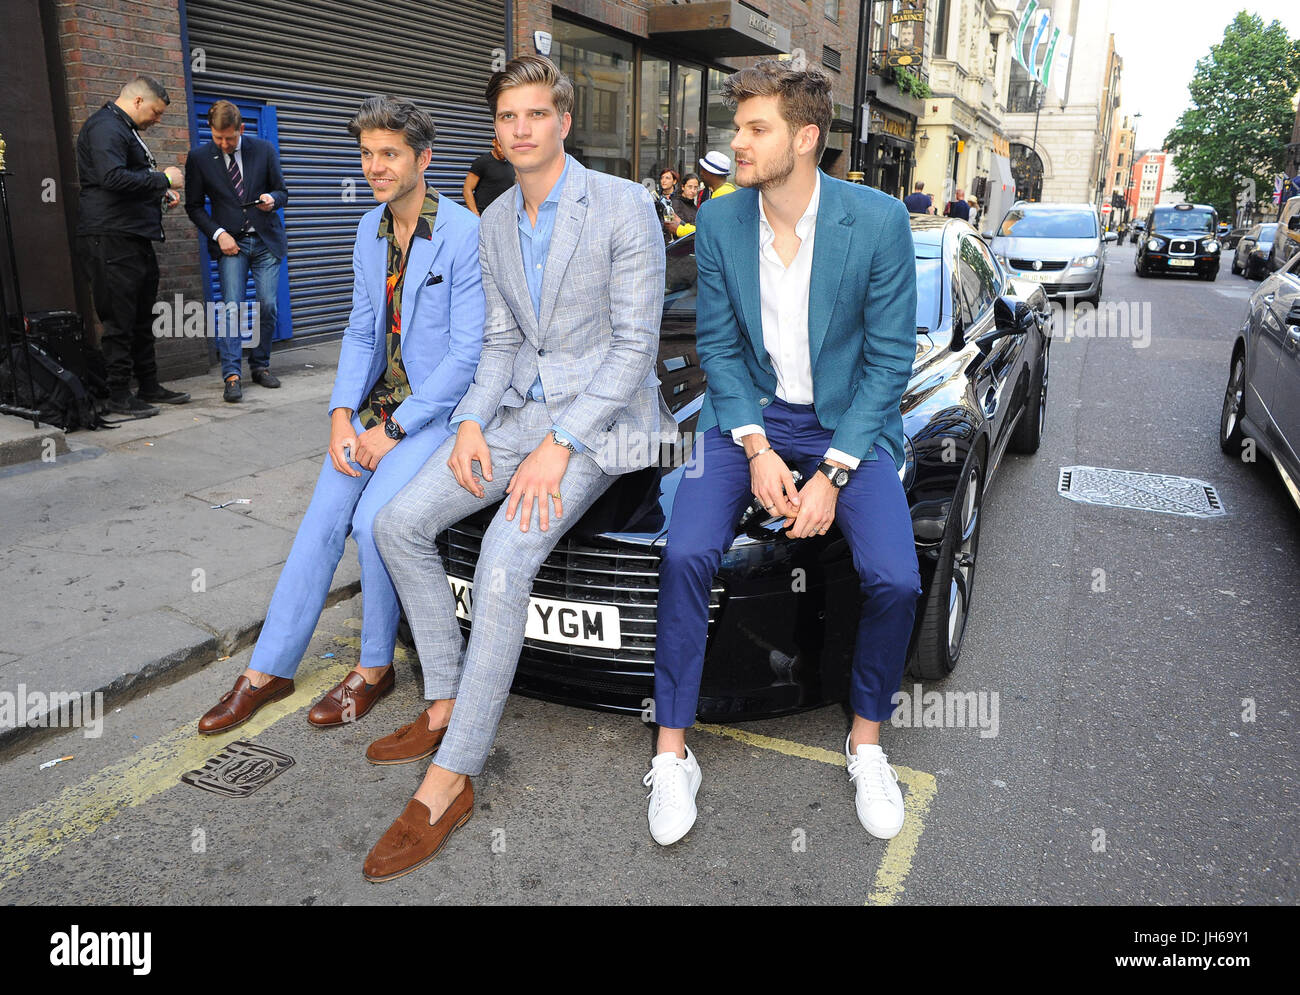 50185608d8 Aston Martin x Hogan London Fashion Week Men s Cocktail Party in  partnership with GQ Style Featuring  Darren Kennedy